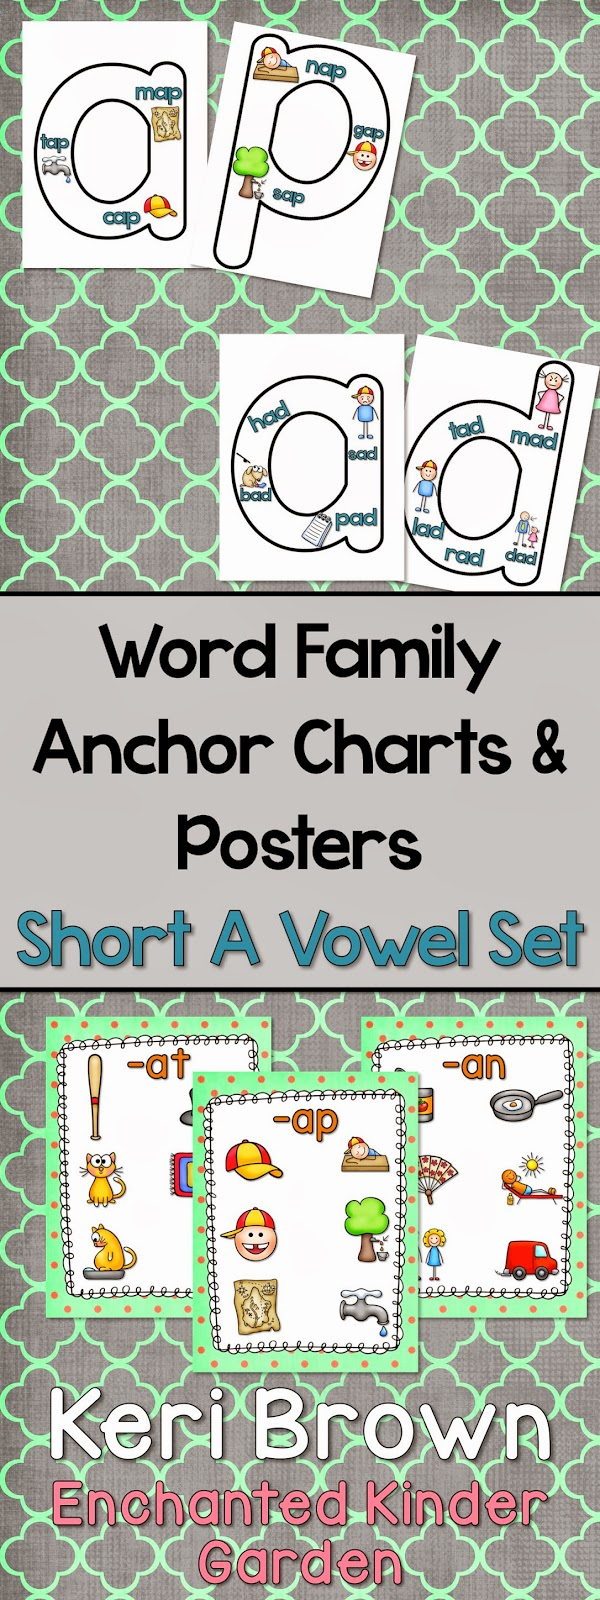 http://www.teacherspayteachers.com/Product/Word-Family-Anchor-Charts-and-Poster-Short-A-Vowel-Set-1278190